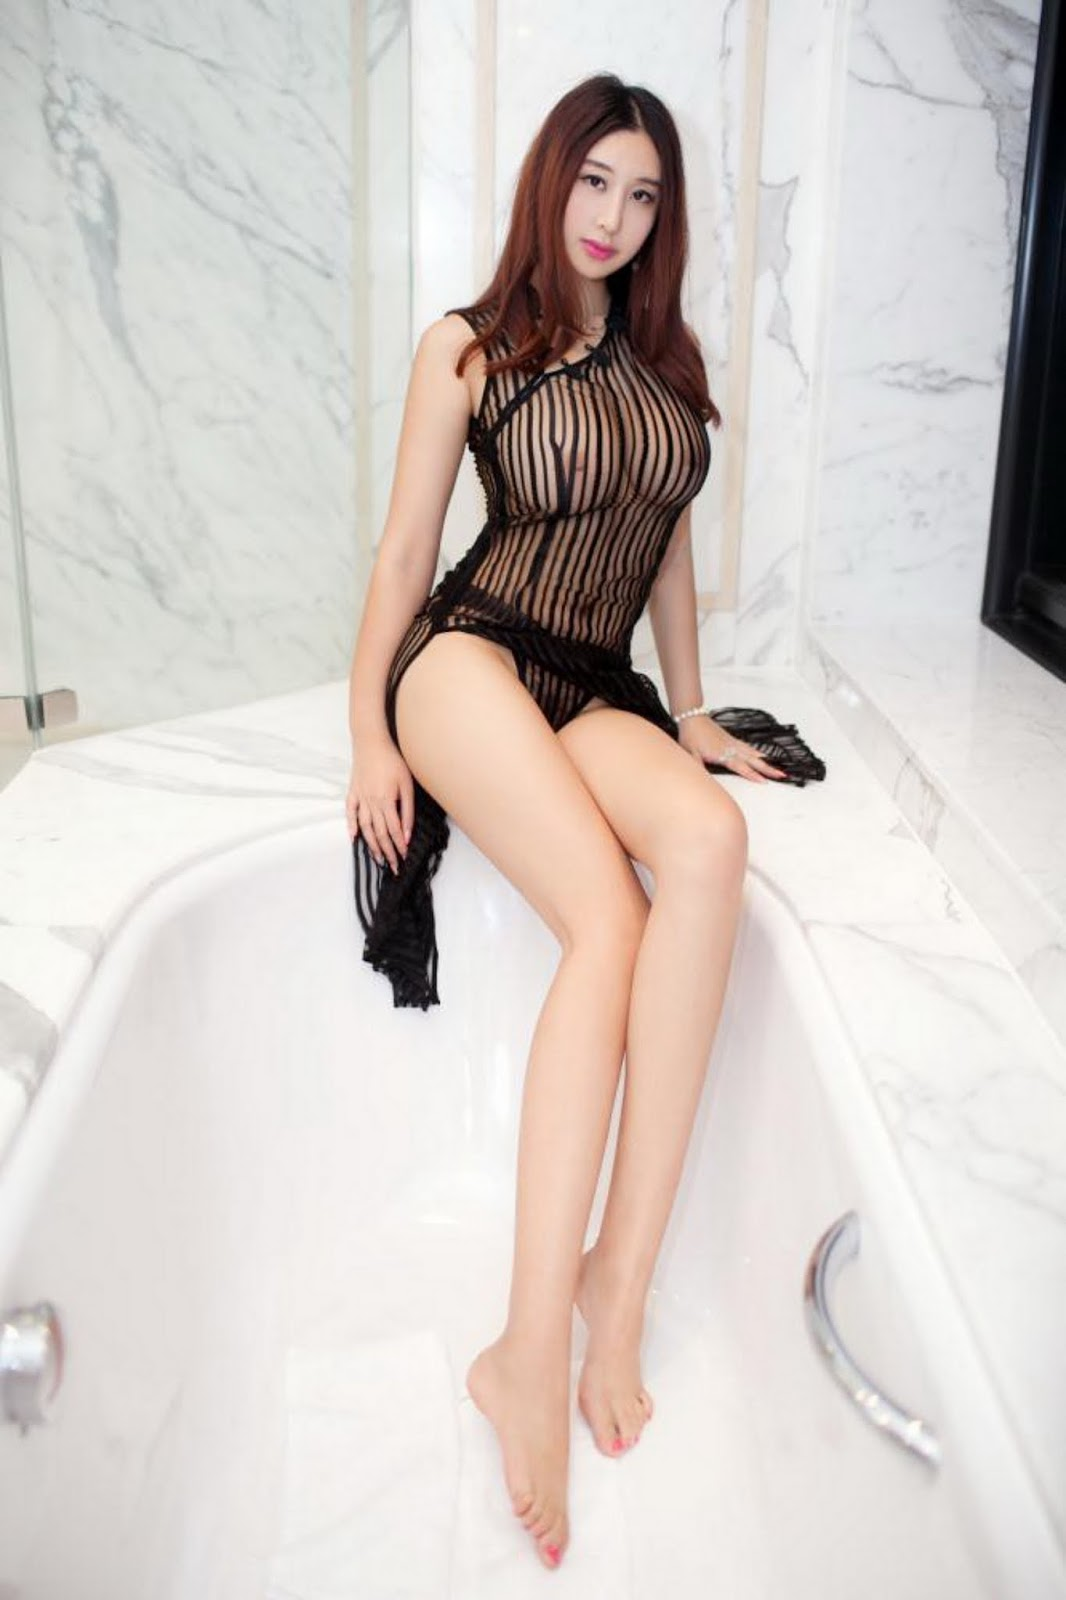 21 - Lake Model Sexy TUIGIRL NO.52 Hot